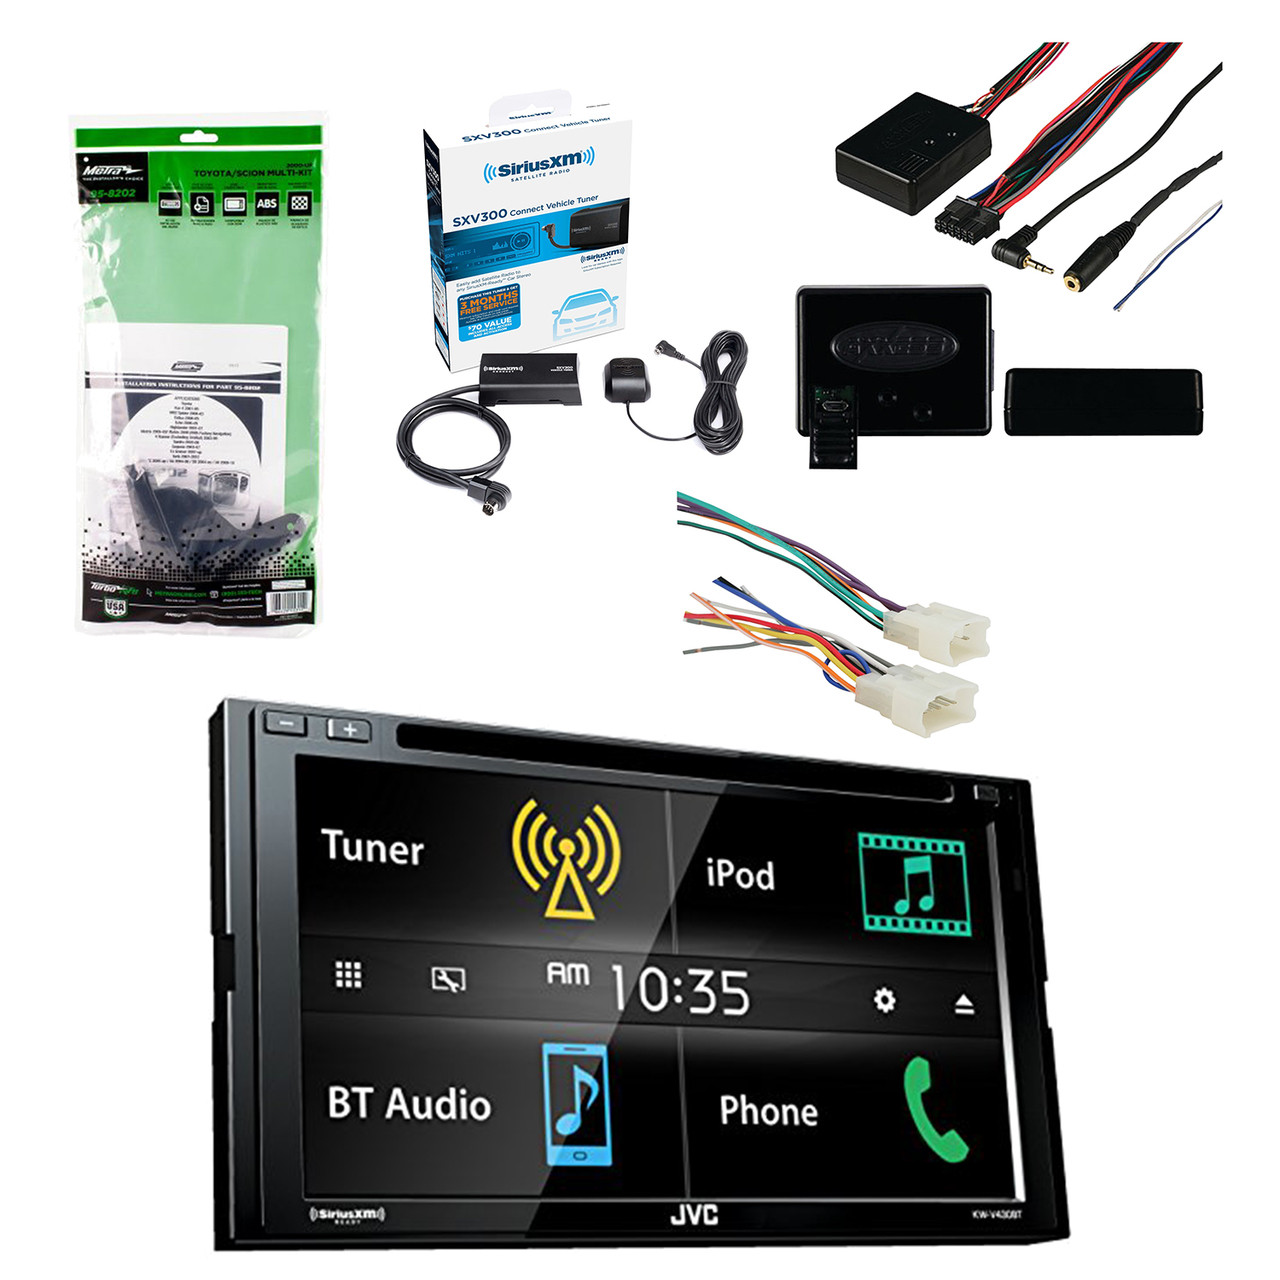 JVC 6.8 Inch LCD Touchscreen 2-DIN Bluetooth Car Stereo Receiver W Universal Wiring Harness Dash on 1987 chevy dash harness, 1967 chevrolet van dash harness, dash gauges, dash radio, 1971 chevelle dash harness, chevy suburban wire harness, 99 firebird dash harness,